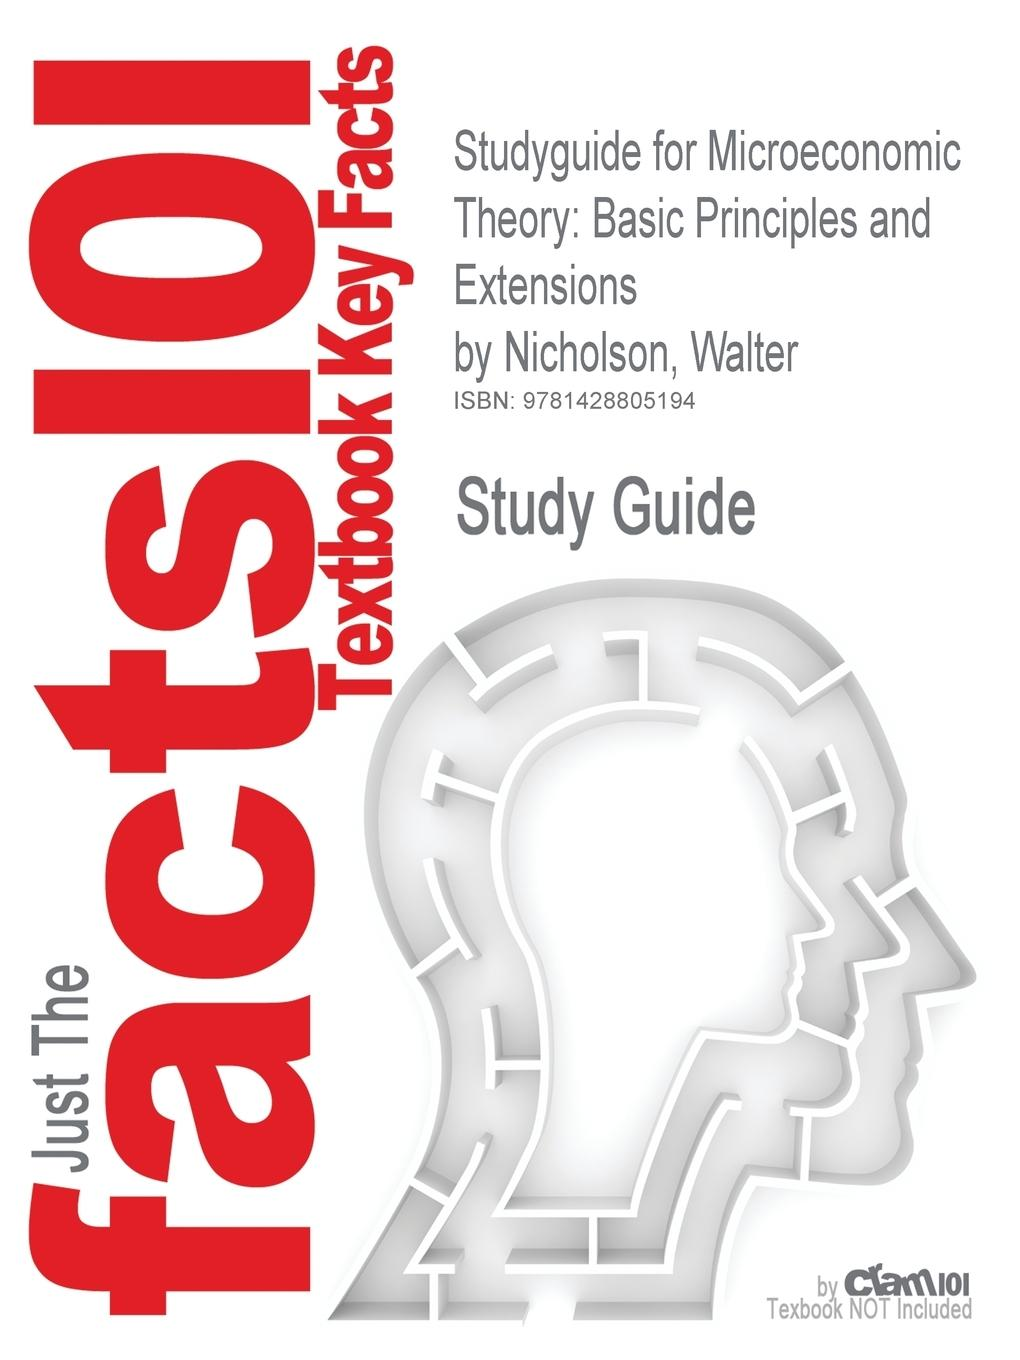 Studyguide for Microeconomic Theory